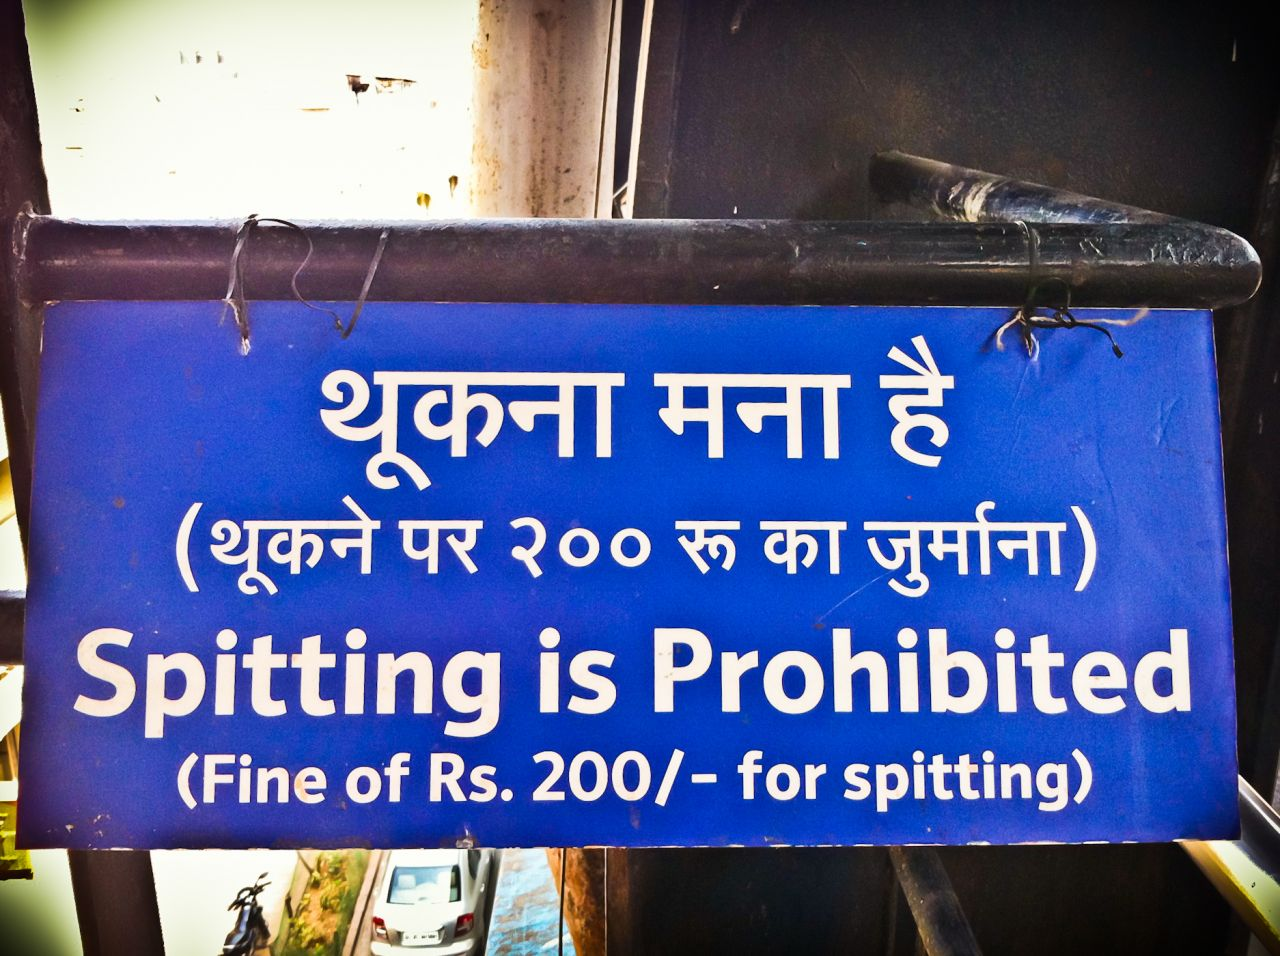 Anti-spitting campaigns are fighting an uphill battle against paan chewing and spitting, practices that are deeply embedded in Indian culture.